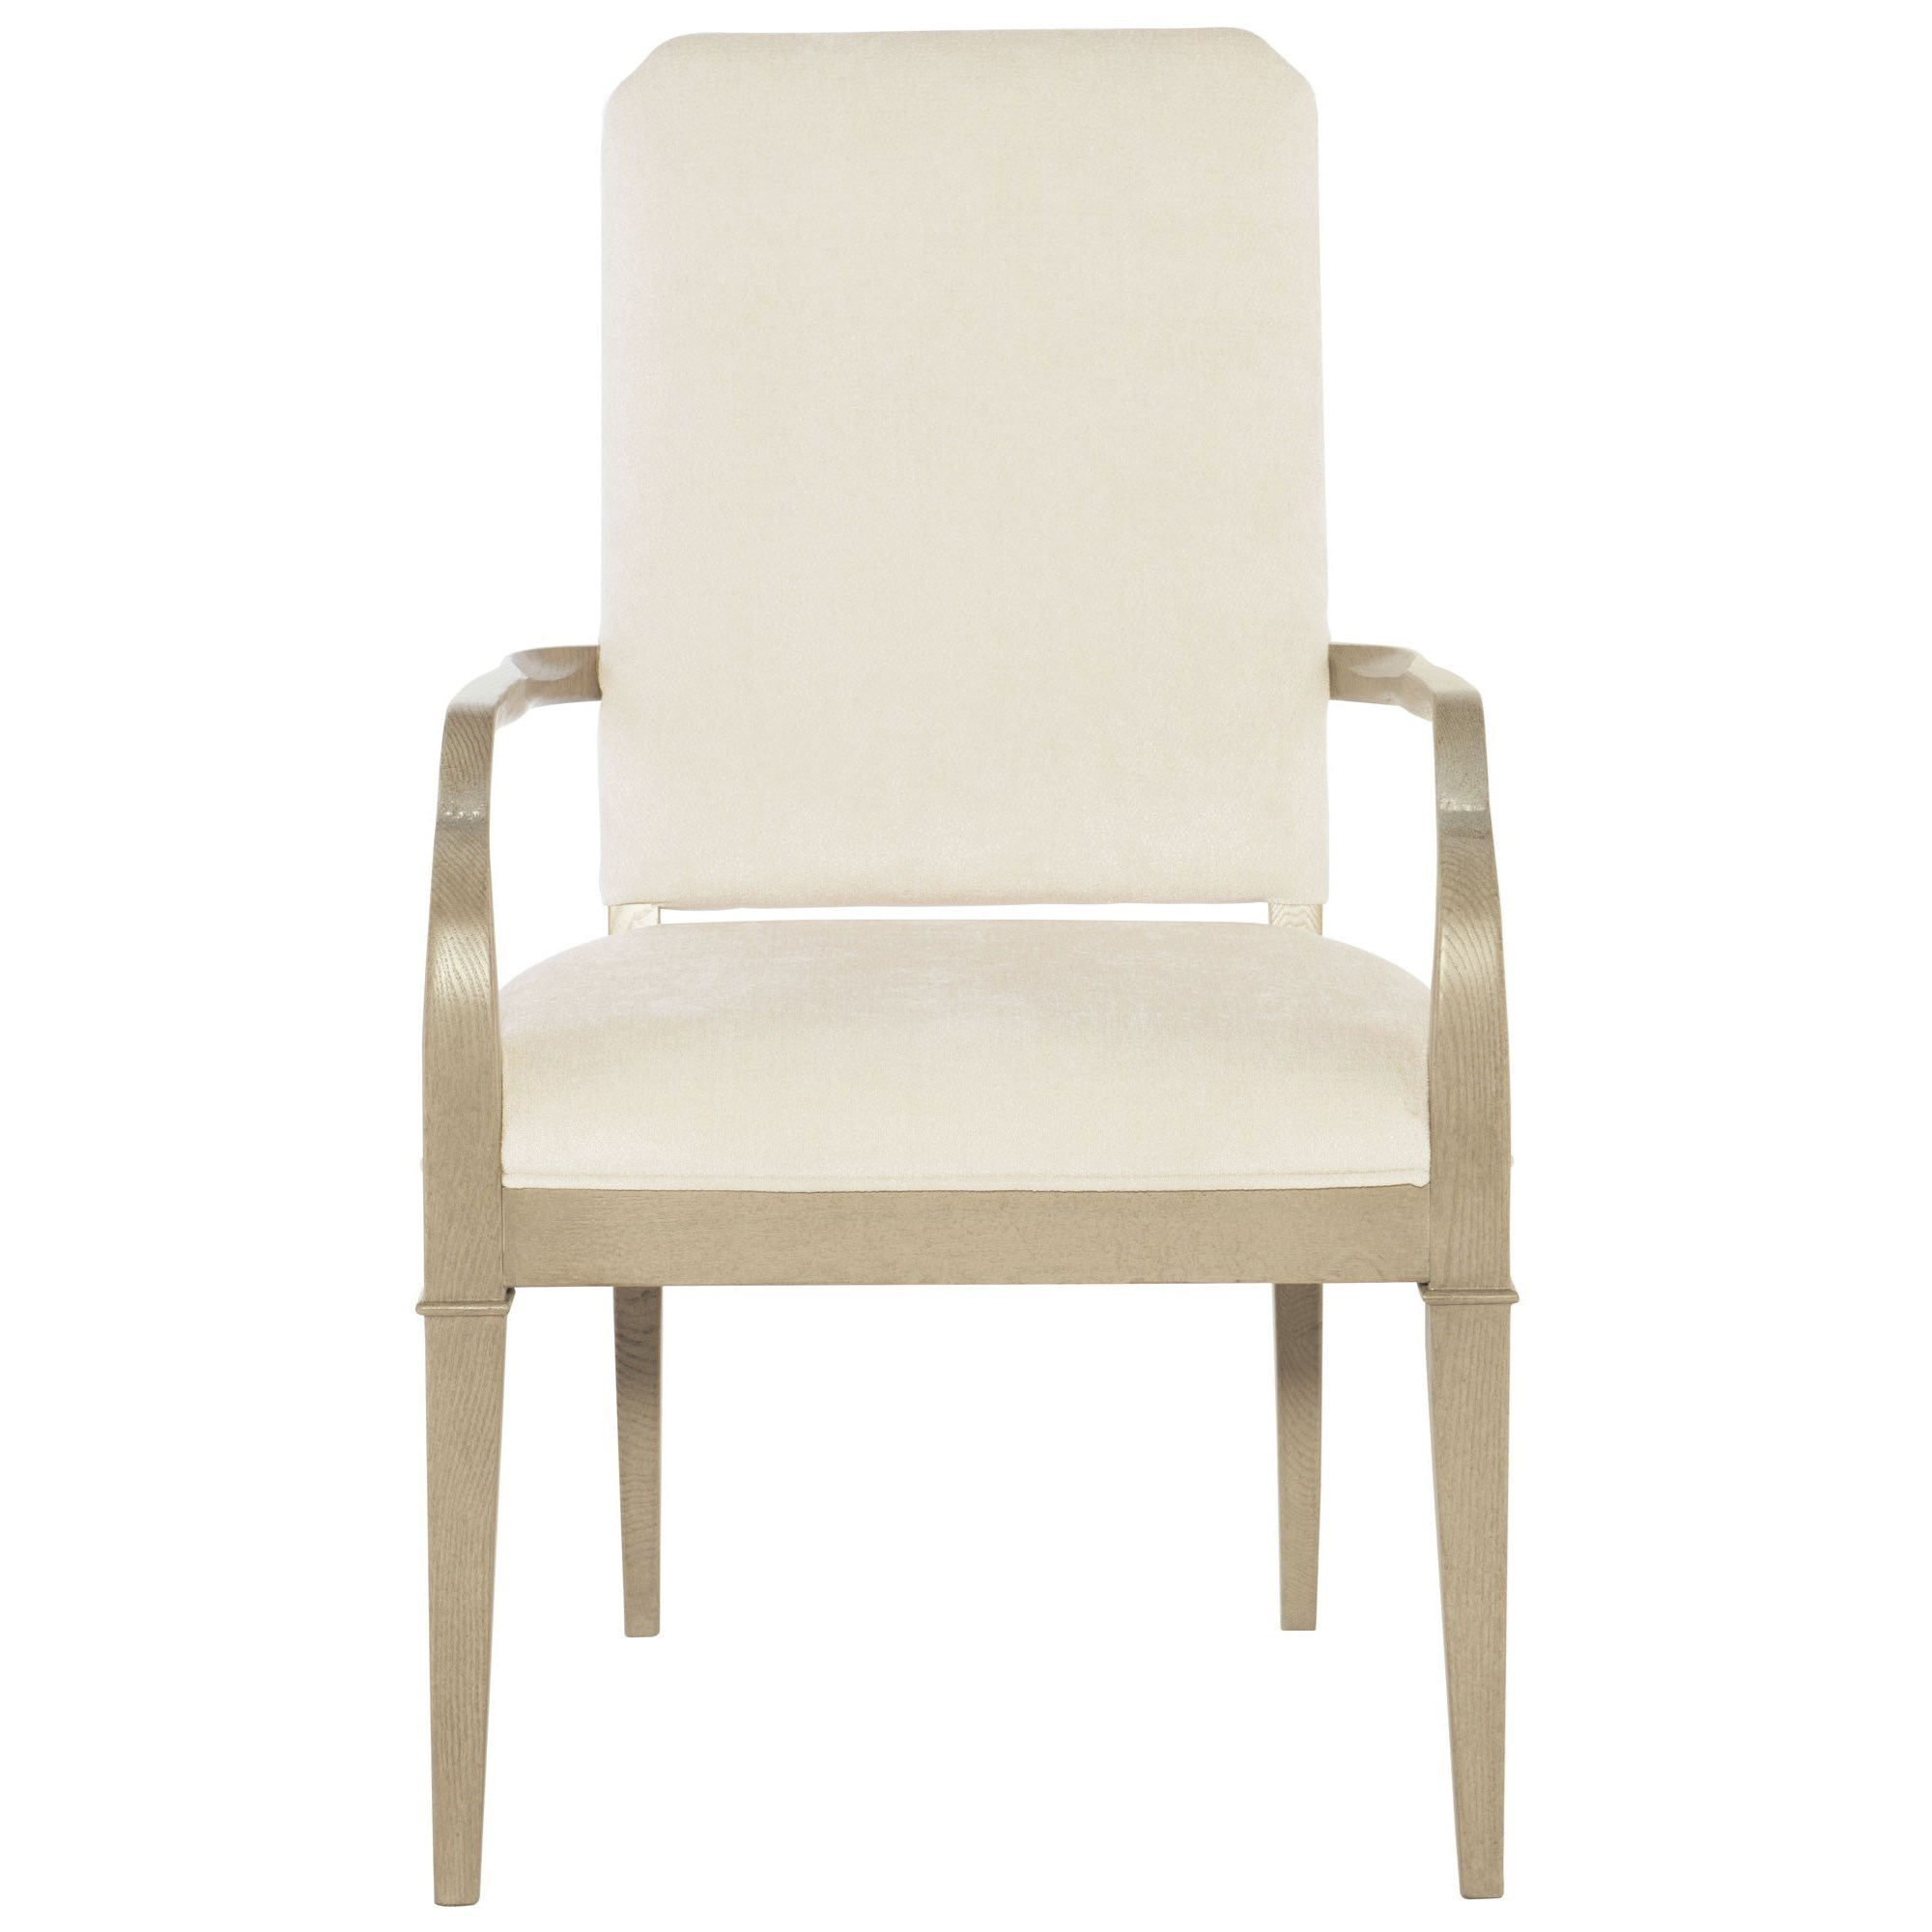 bernhardt savoy place upholstered arm chair with greek key design furniture dining arm chairs